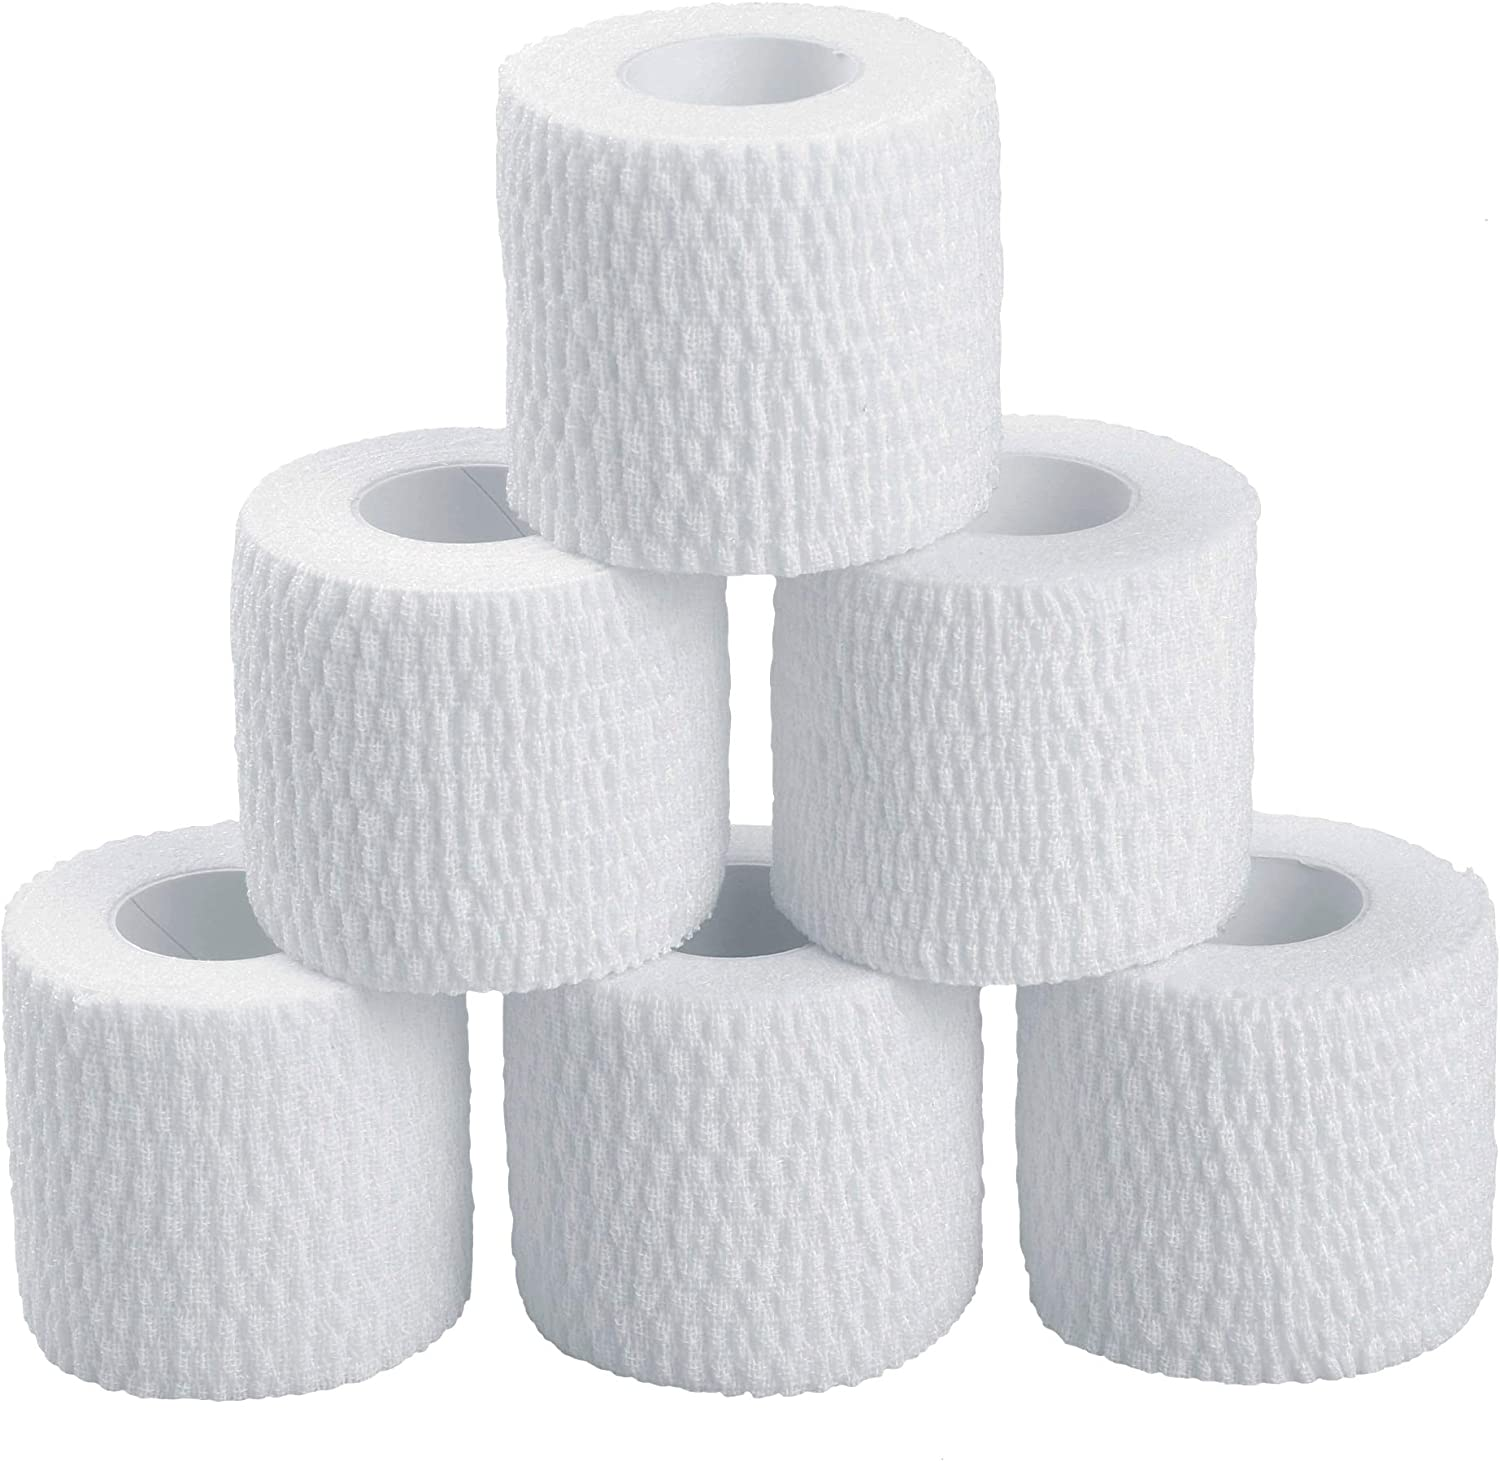 Oly Grip  Weightlifting Thumb Hook Grip Cotton Tear Stretch Tape (6 Rolls)  Weight Lifting  Crossfit  Gymnastics  Keep Fingers and Hands Safe During Workout